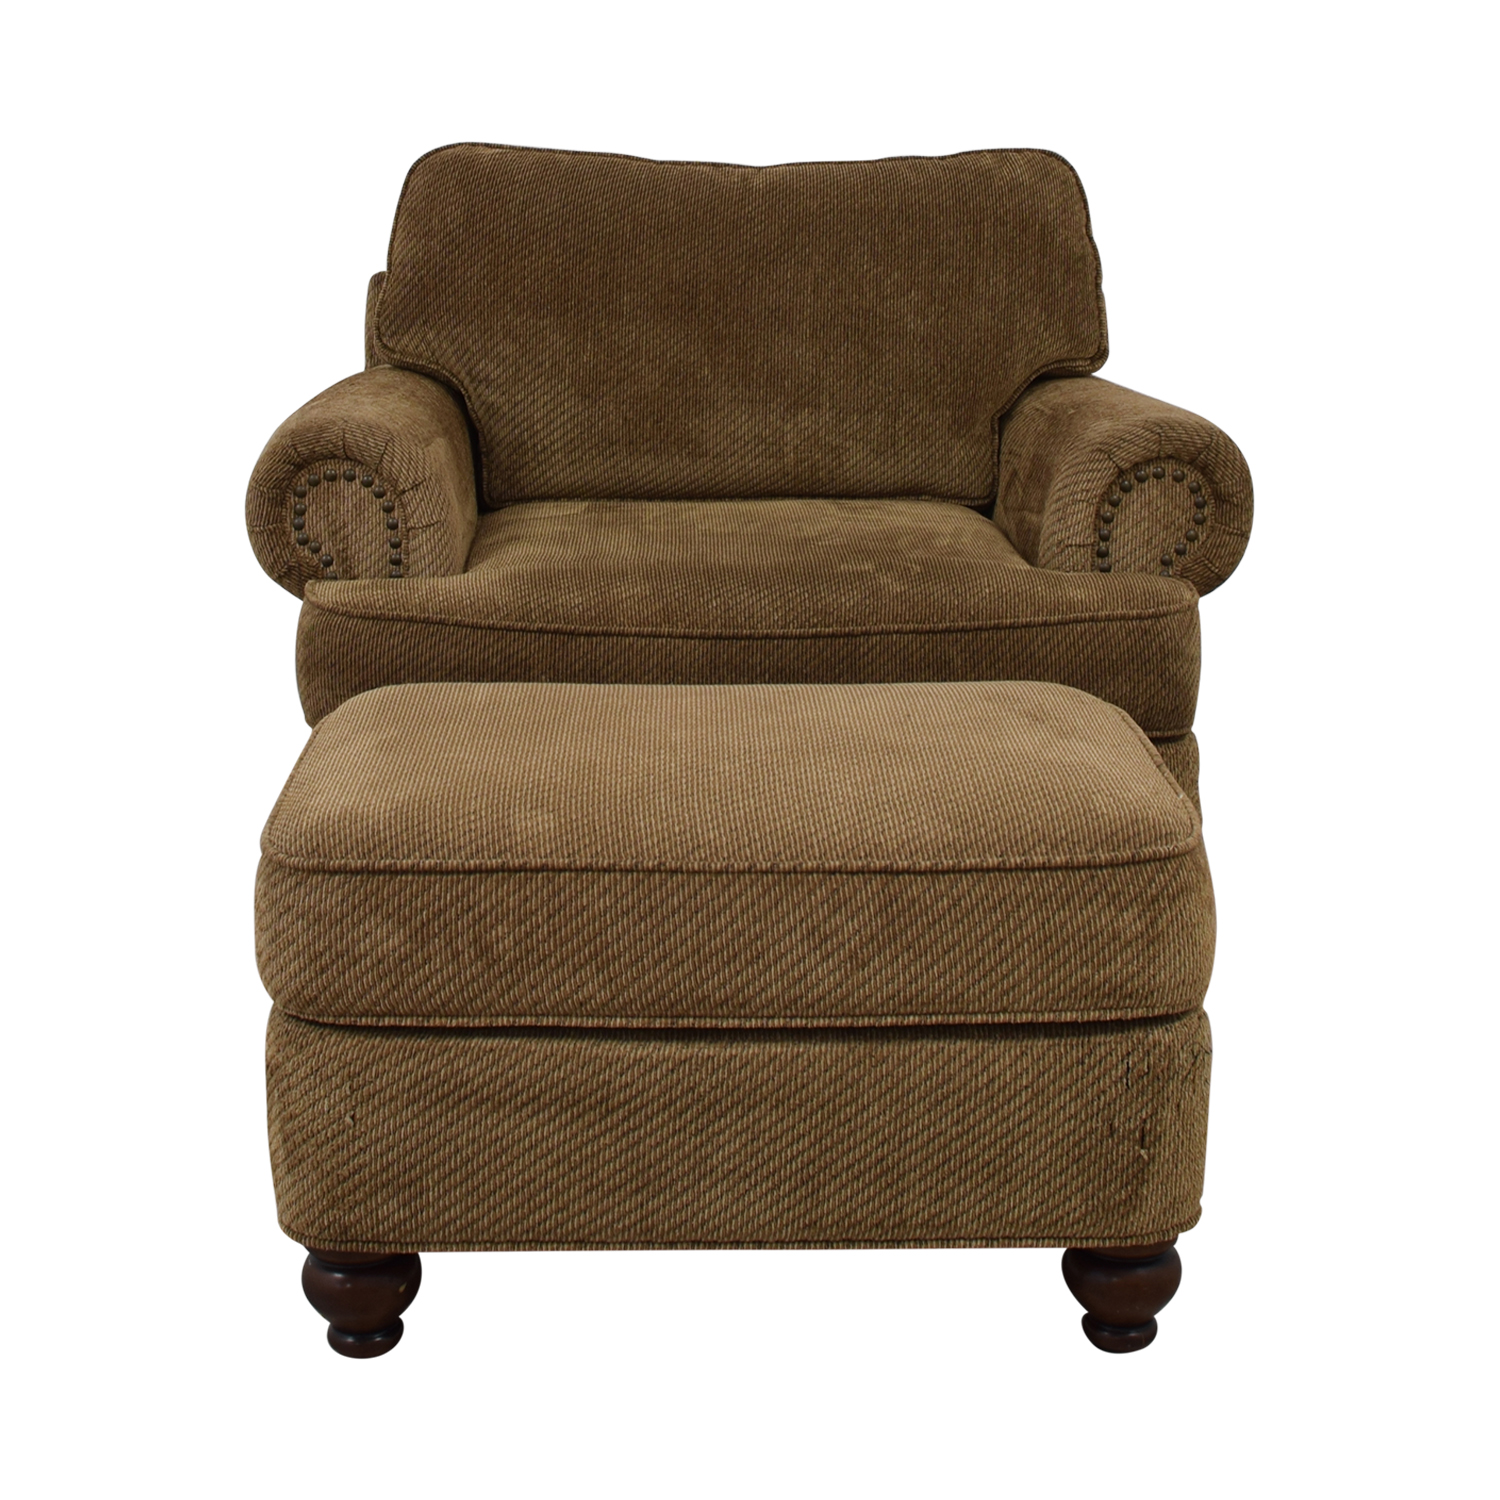 buy Ethan Allen Oversized Chair with Ottoman Ethan Allen Chairs